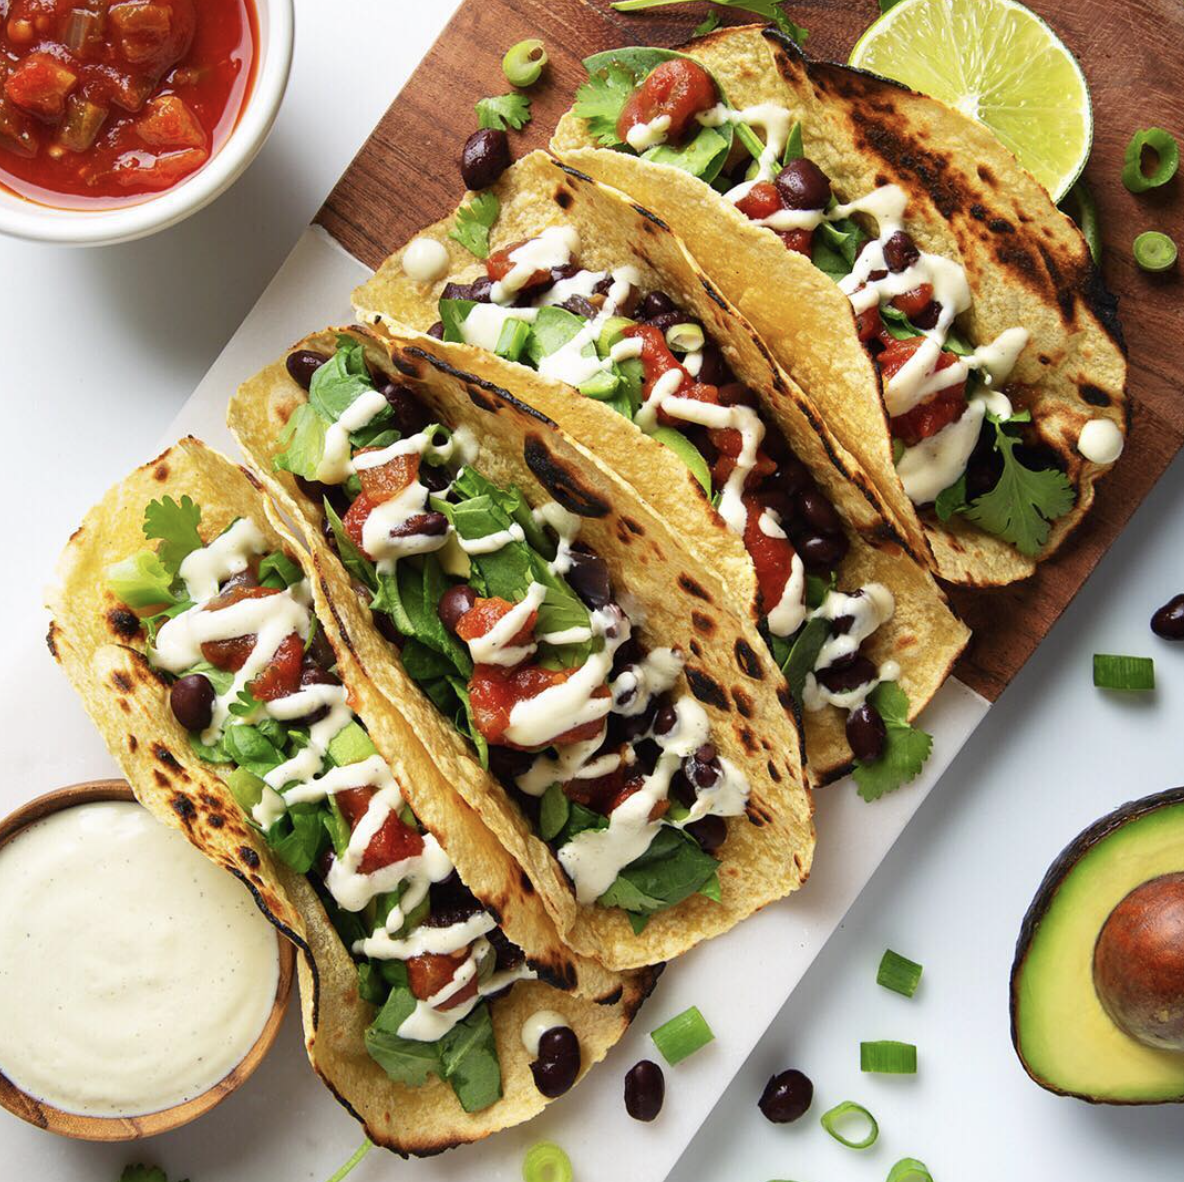 Black Bean Breakfast Tacos with Creamy Garlic Sauce